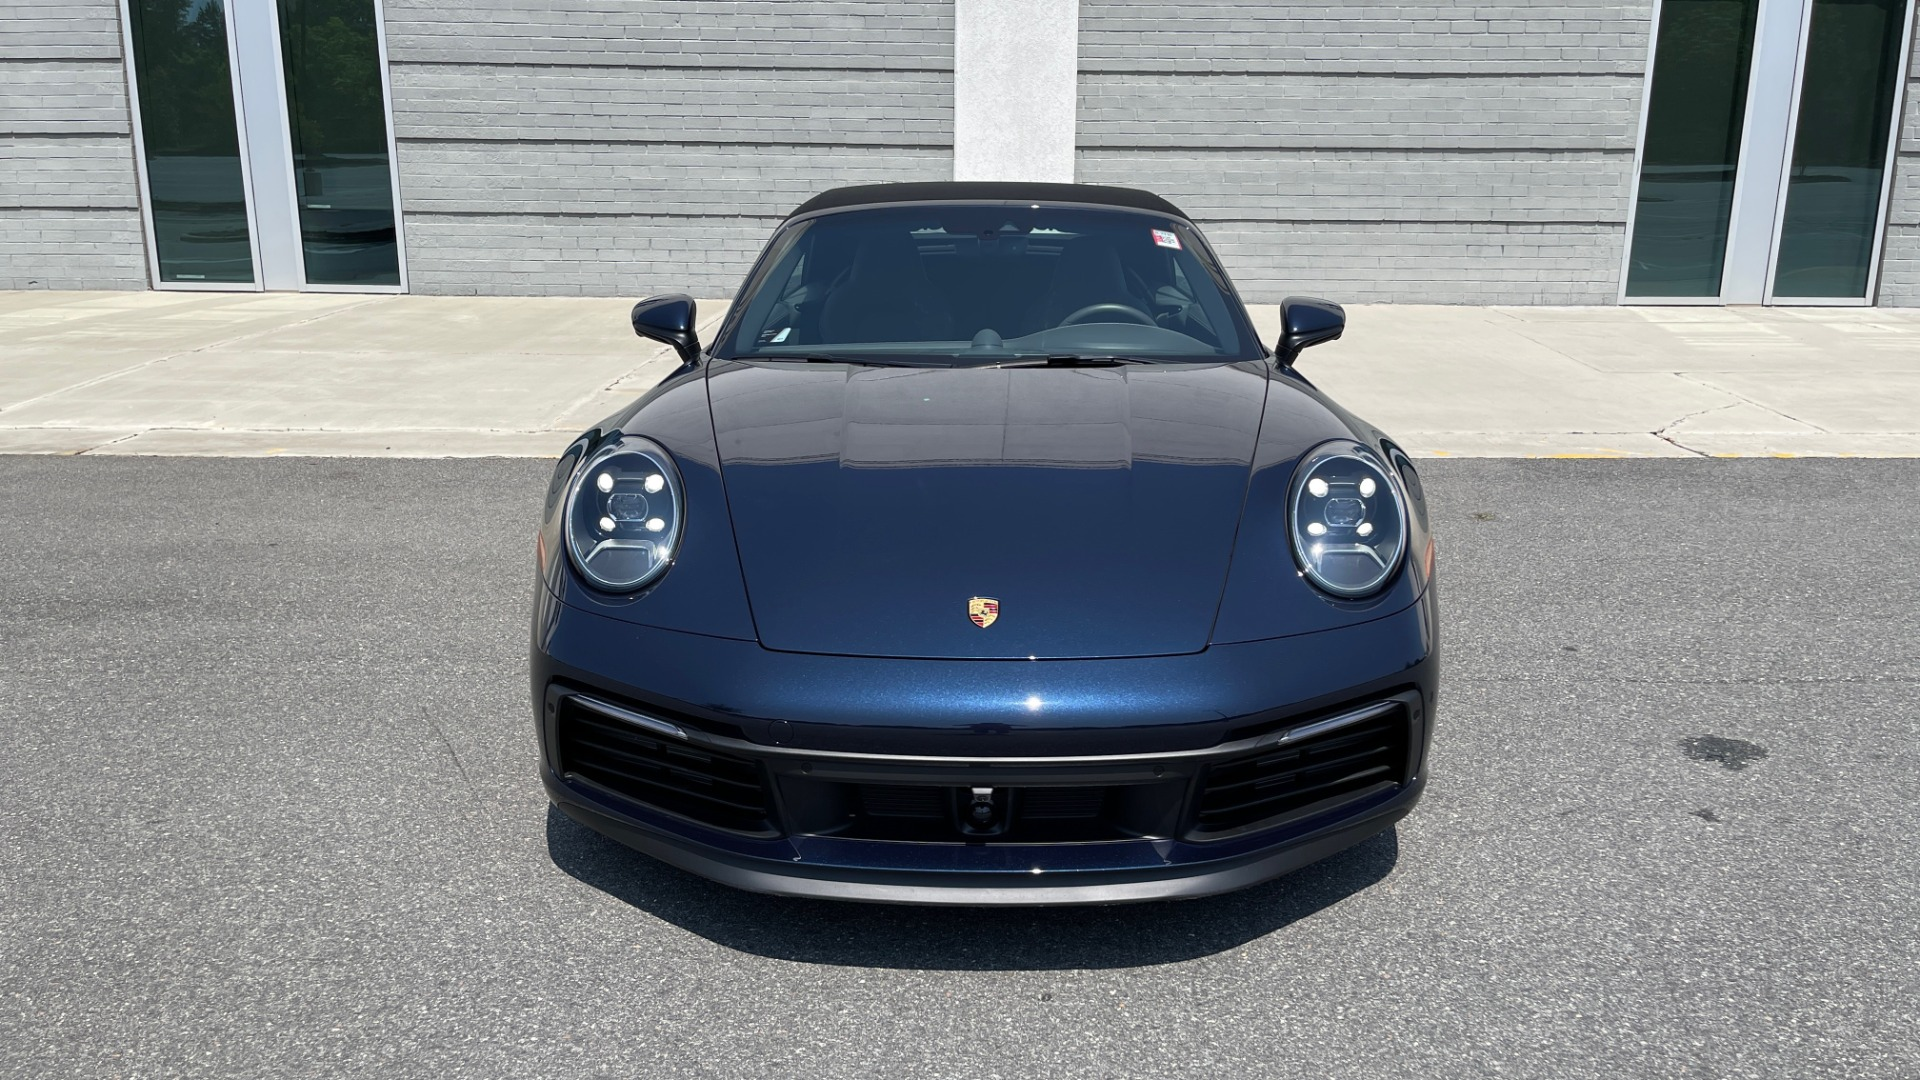 Used 2020 Porsche 911 CARRERA S CABRIOLET PREMIUM SPORT / LCA / ACC / BOSE / REARVIEW for sale $159,995 at Formula Imports in Charlotte NC 28227 9